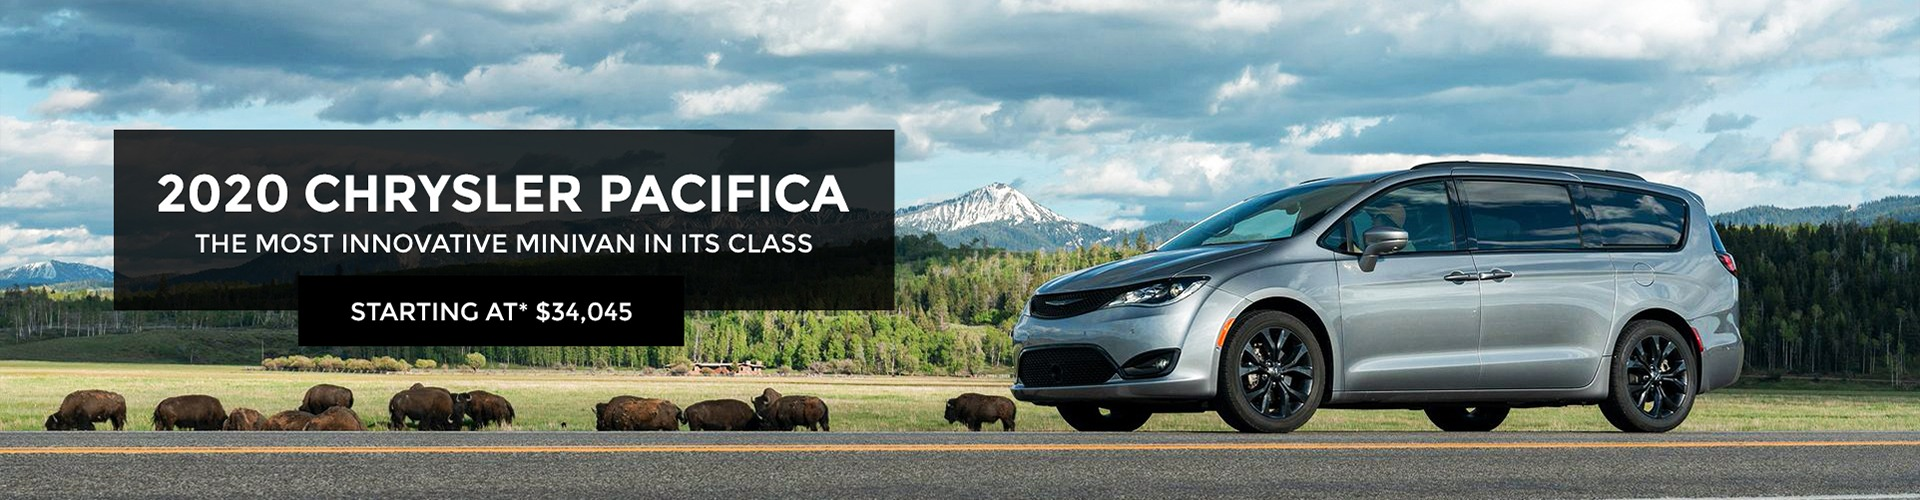 2020 Chrysler Pacifica - The Most Innovative Minivan In Its Class